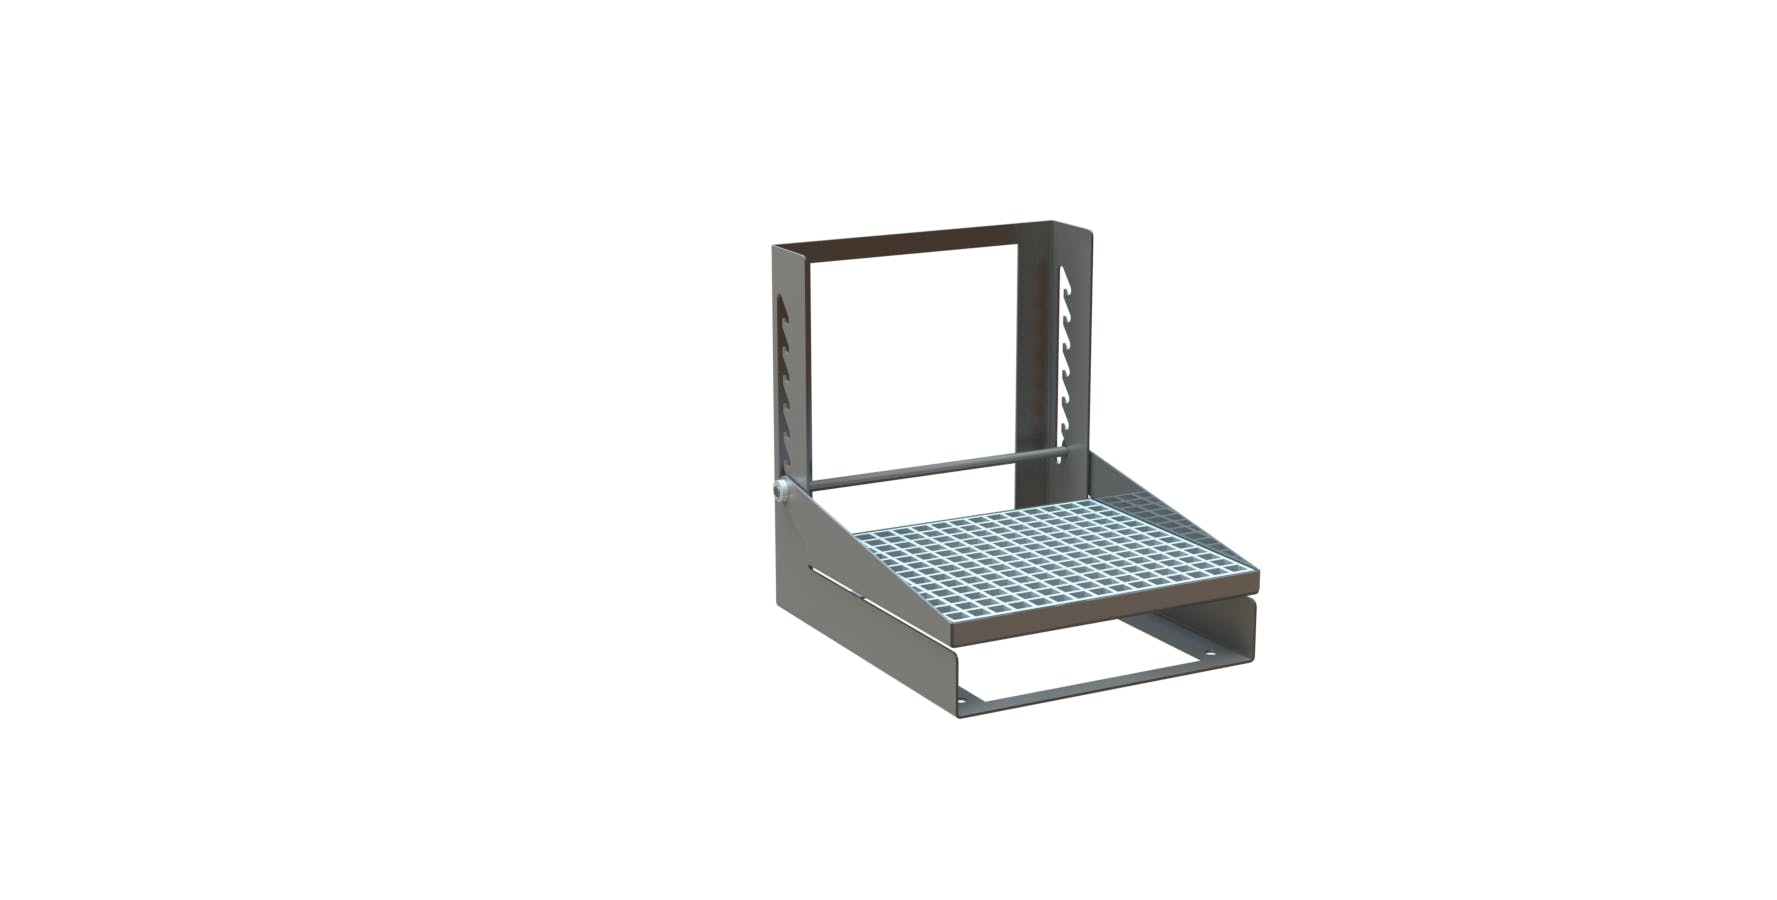 ERG-200 Ergonomic Stand - ERG-200 Ergonomic Stand - sold by Fusion Tech Integrated Inc.